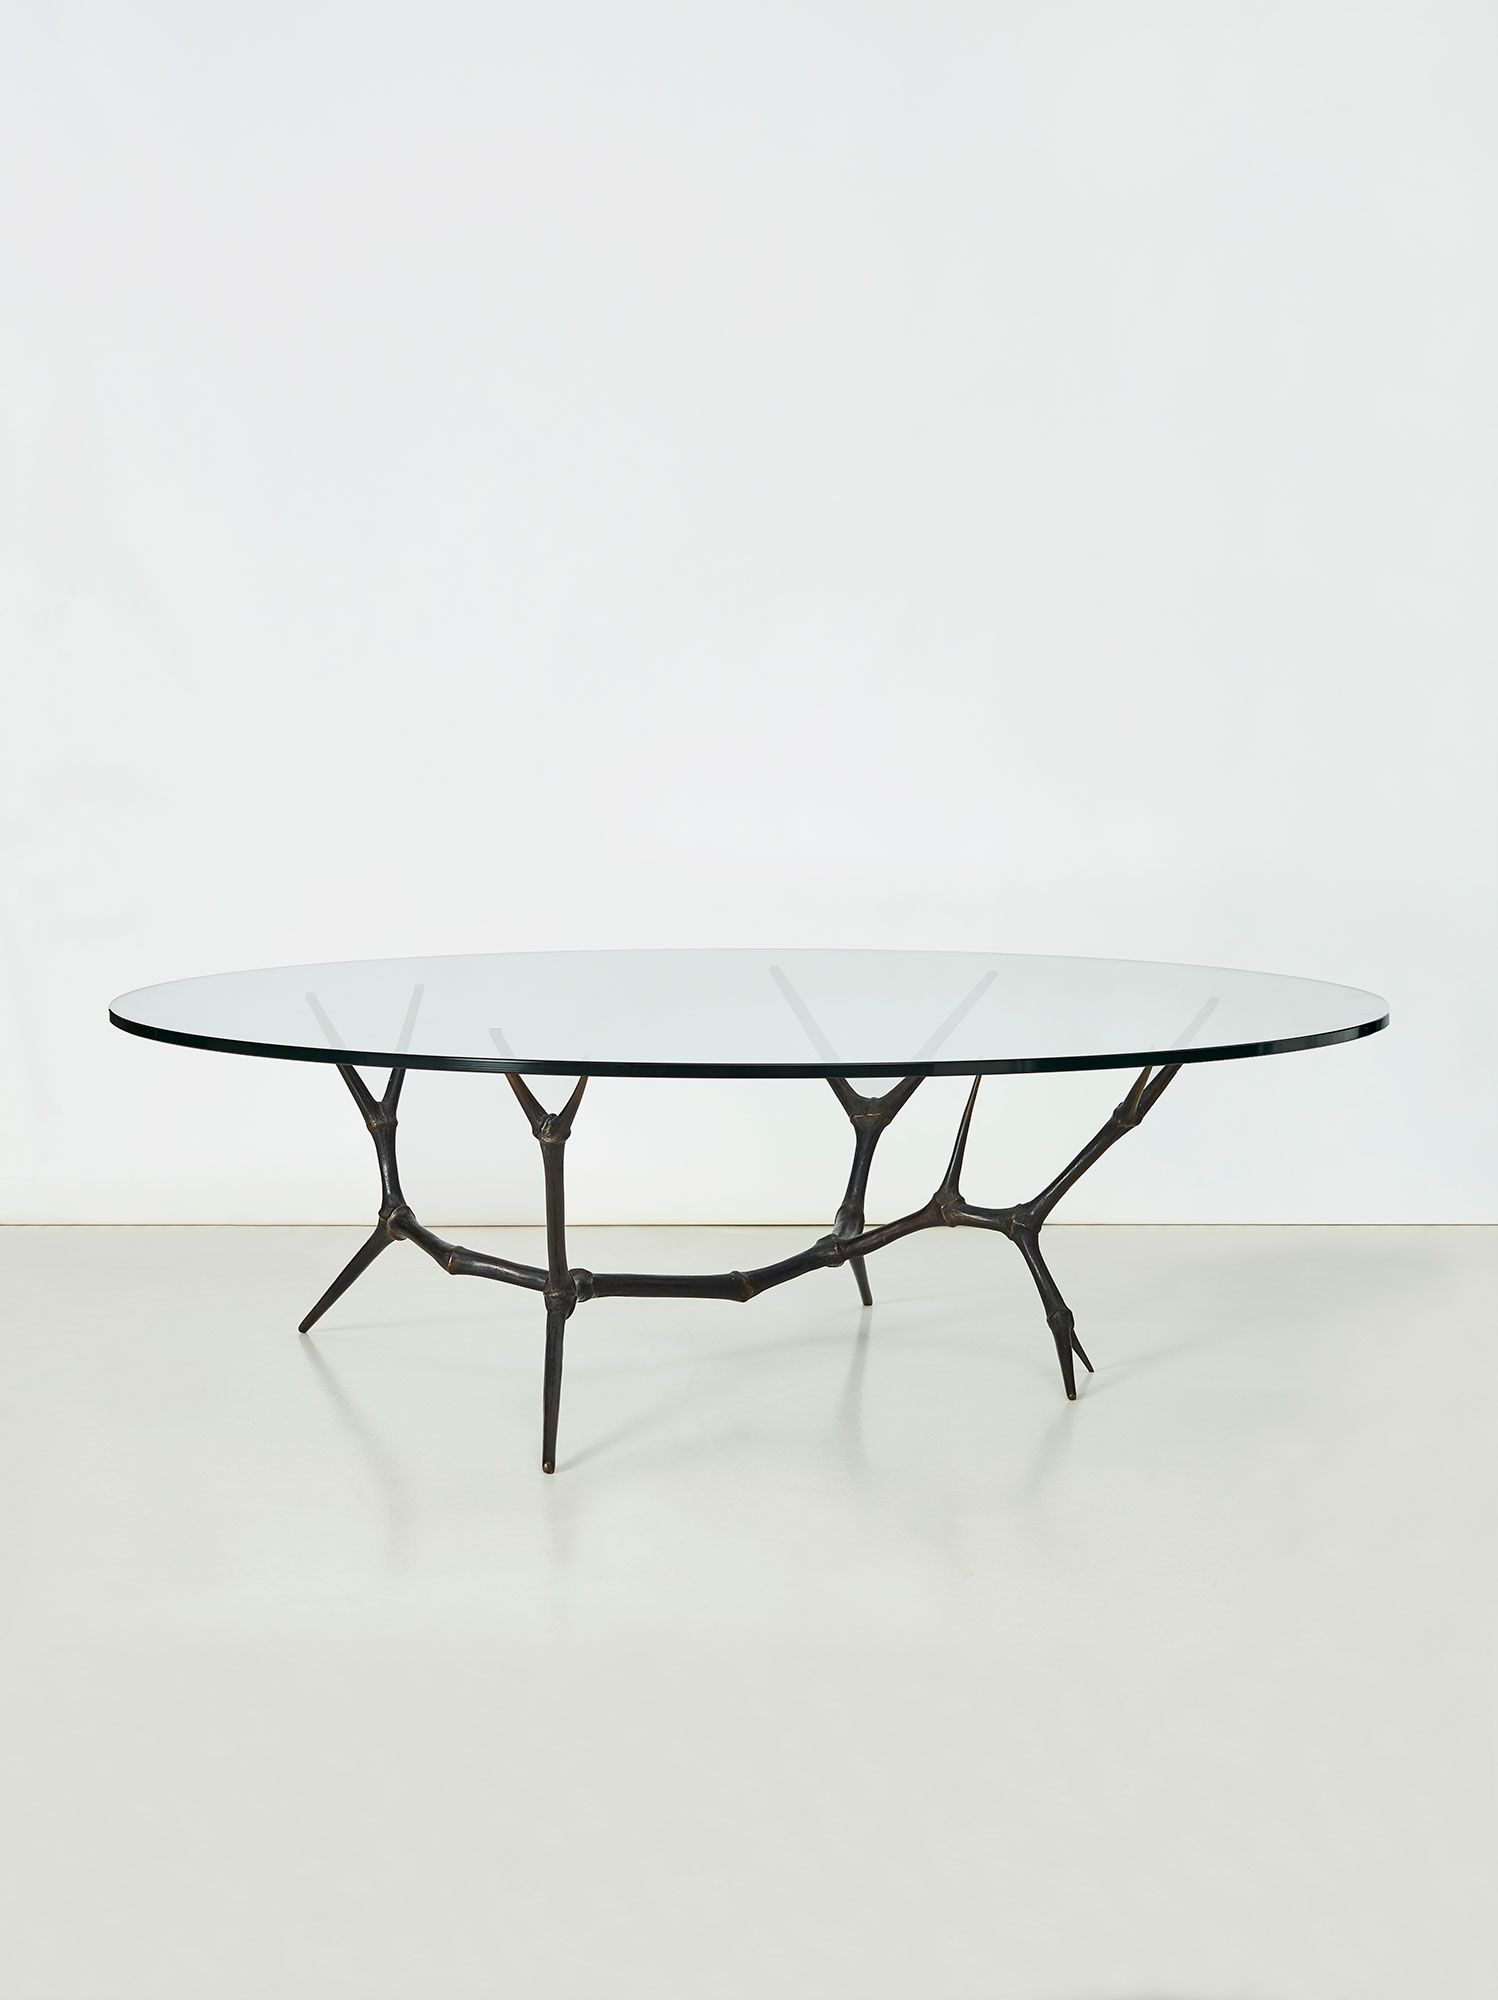 Charles Haupt Num Num Coffee Table Joined Thorns Coffee Table Bronze Table Table [ 2000 x 1498 Pixel ]